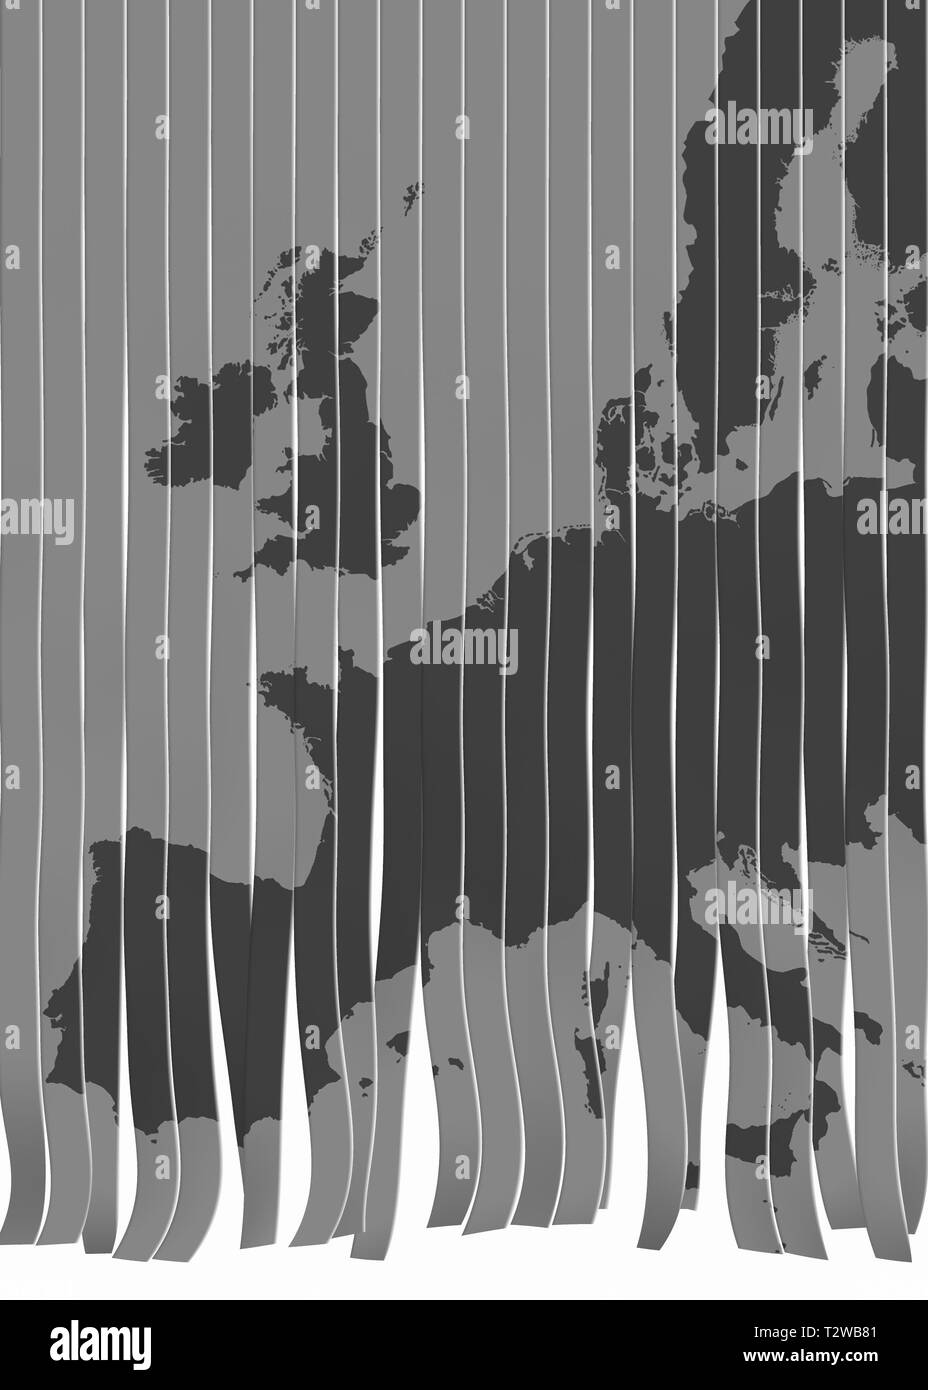 map of Europe trimmed as concept for European union in crisis - Stock Image